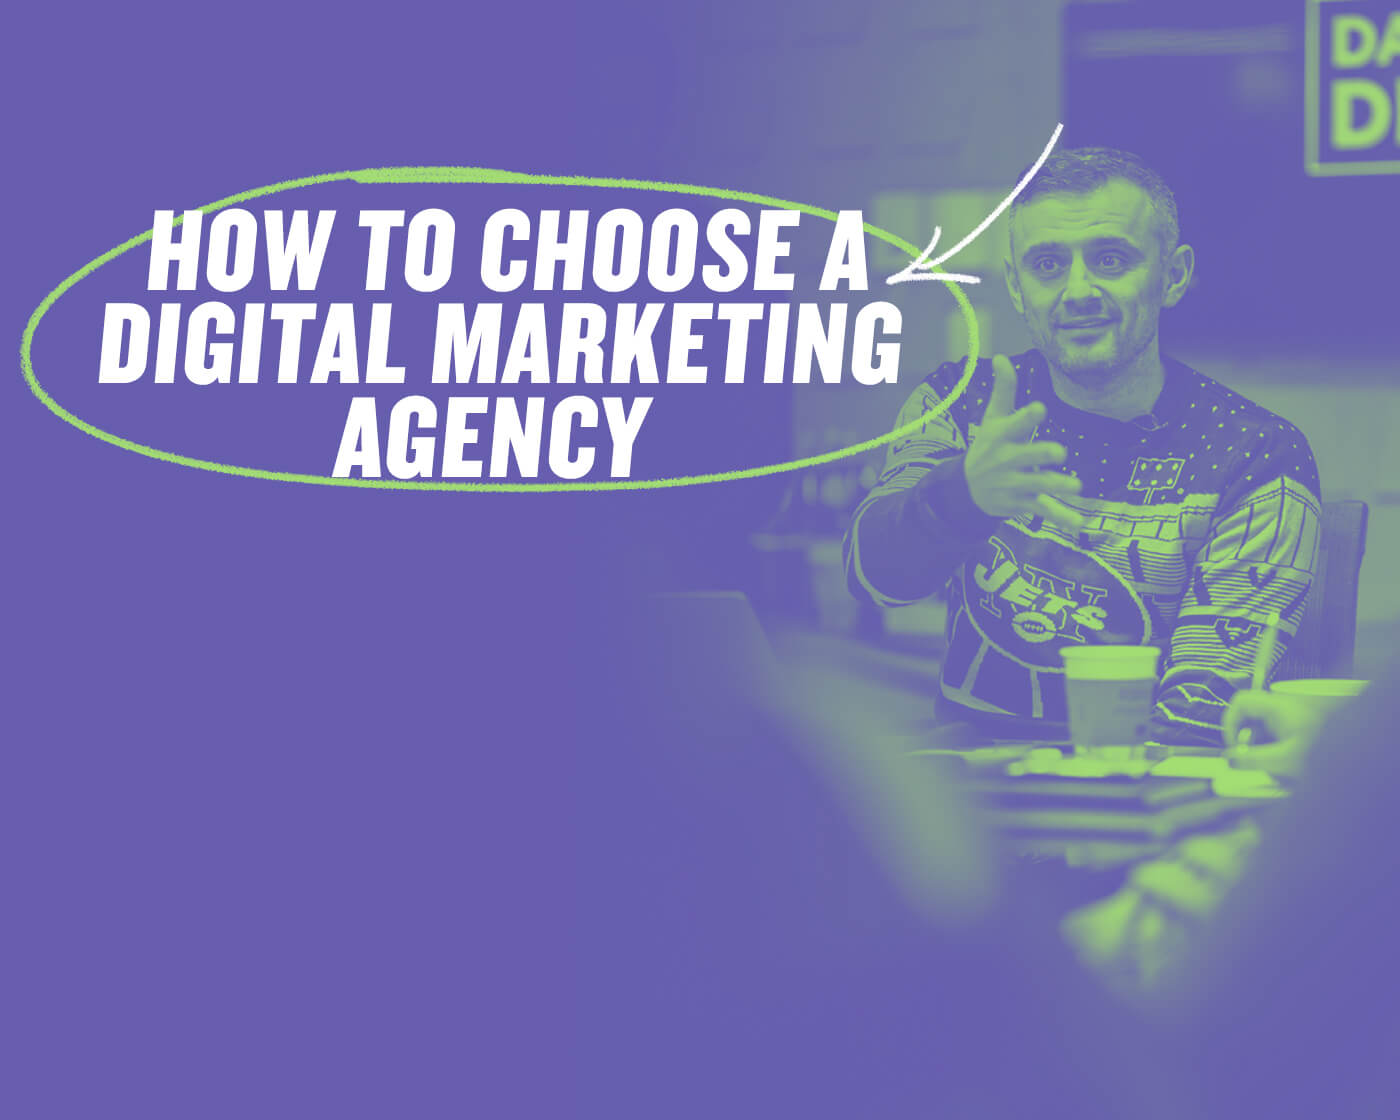 24 Digital Marketing Agencies That Specialize on Entrepreneurship